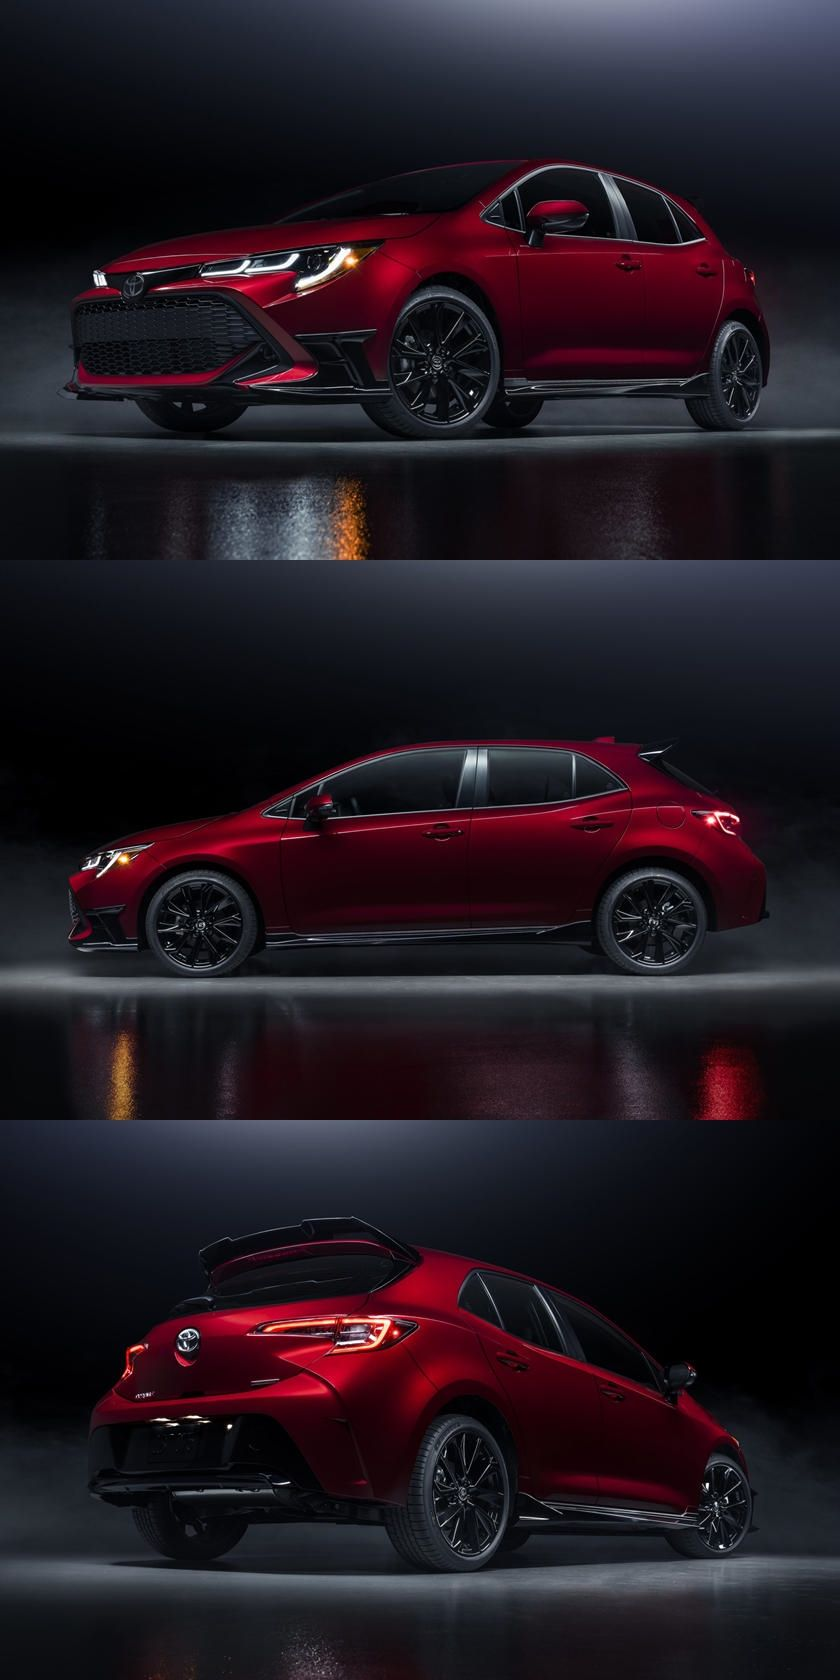 2021 Toyota Corolla Hatchback Special Edition Looks Brilliant But It S Not The Corolla We Really Wan Toyota Corolla Hatchback Corolla Hatchback Toyota Corolla